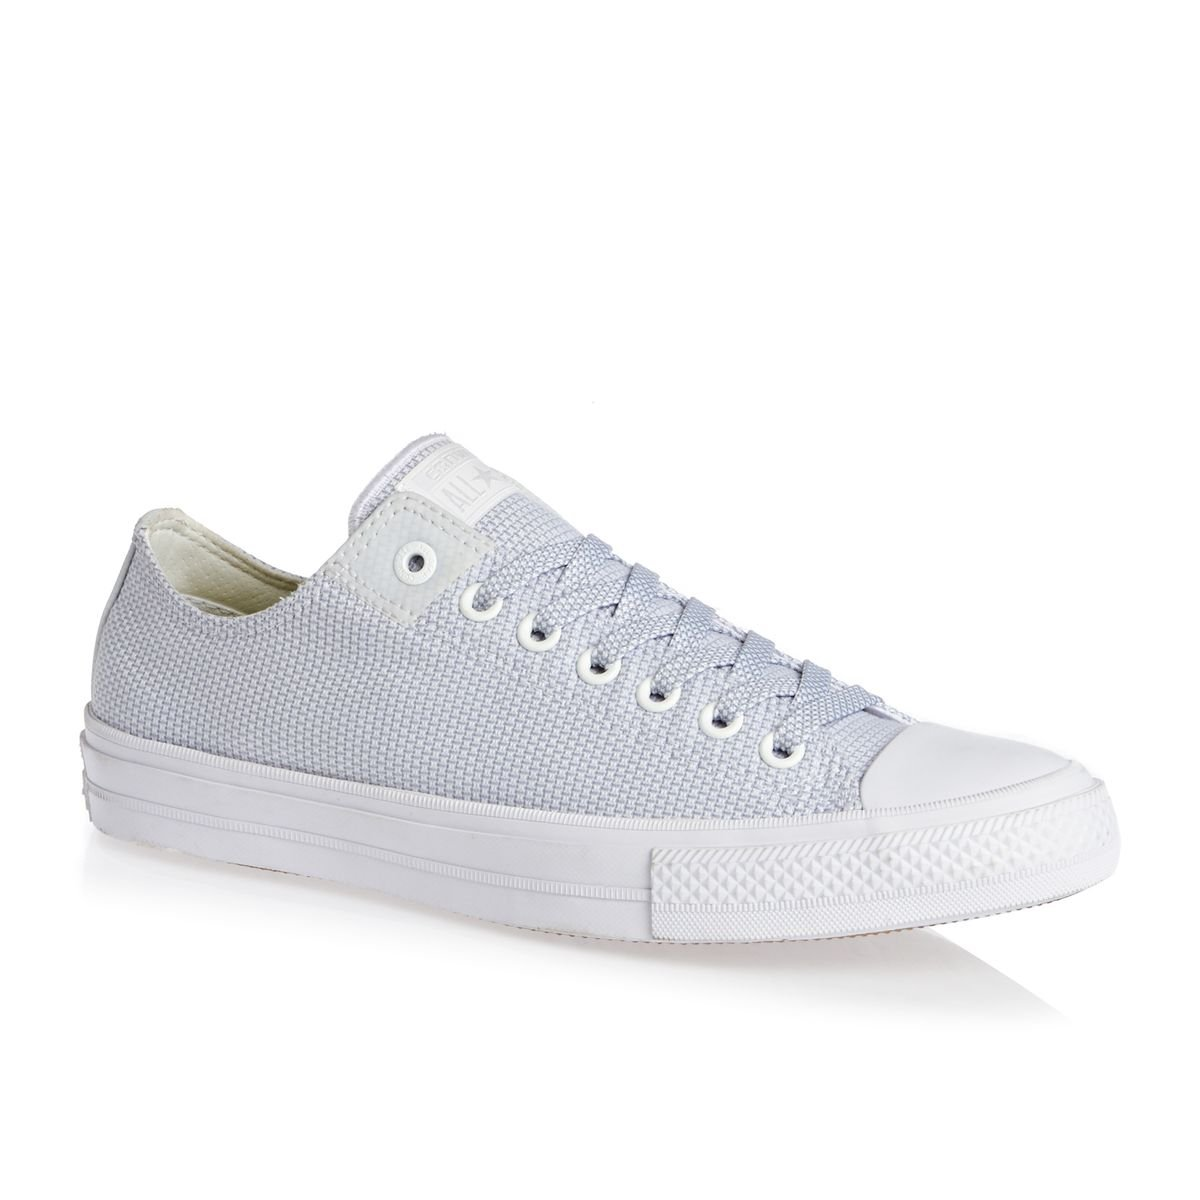 Converse Chuck Taylor All Star Ii Low Mens Sneakers White